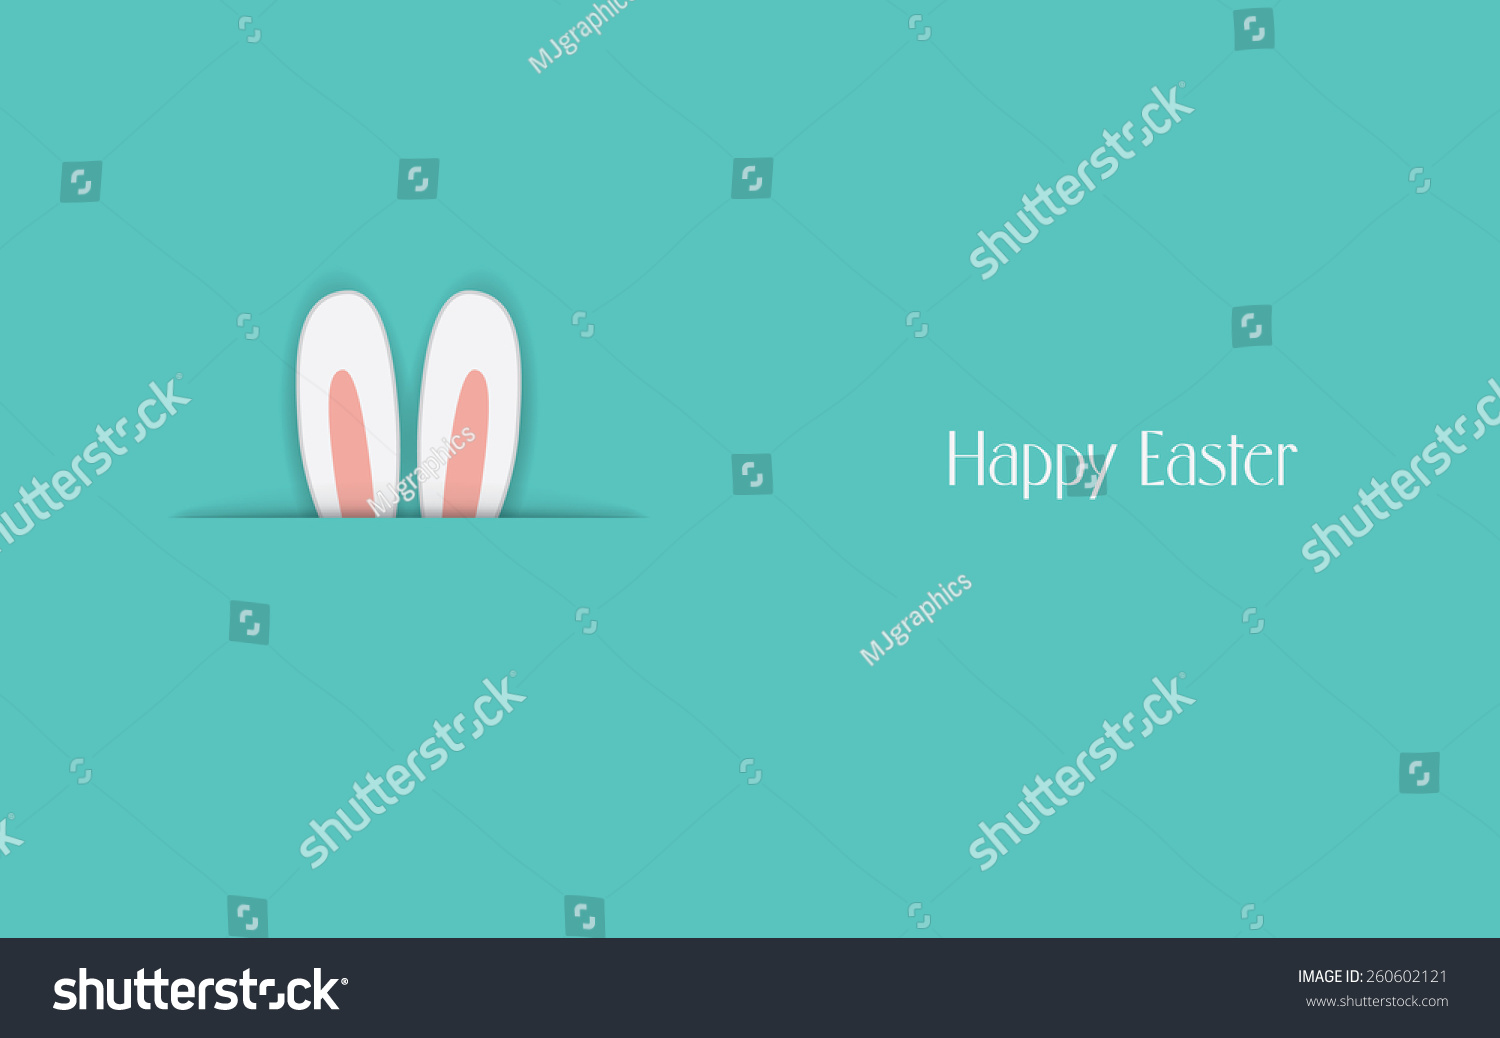 Adorable Happy Easter Postcard Template Bunny Vector – Easter Postcard Template